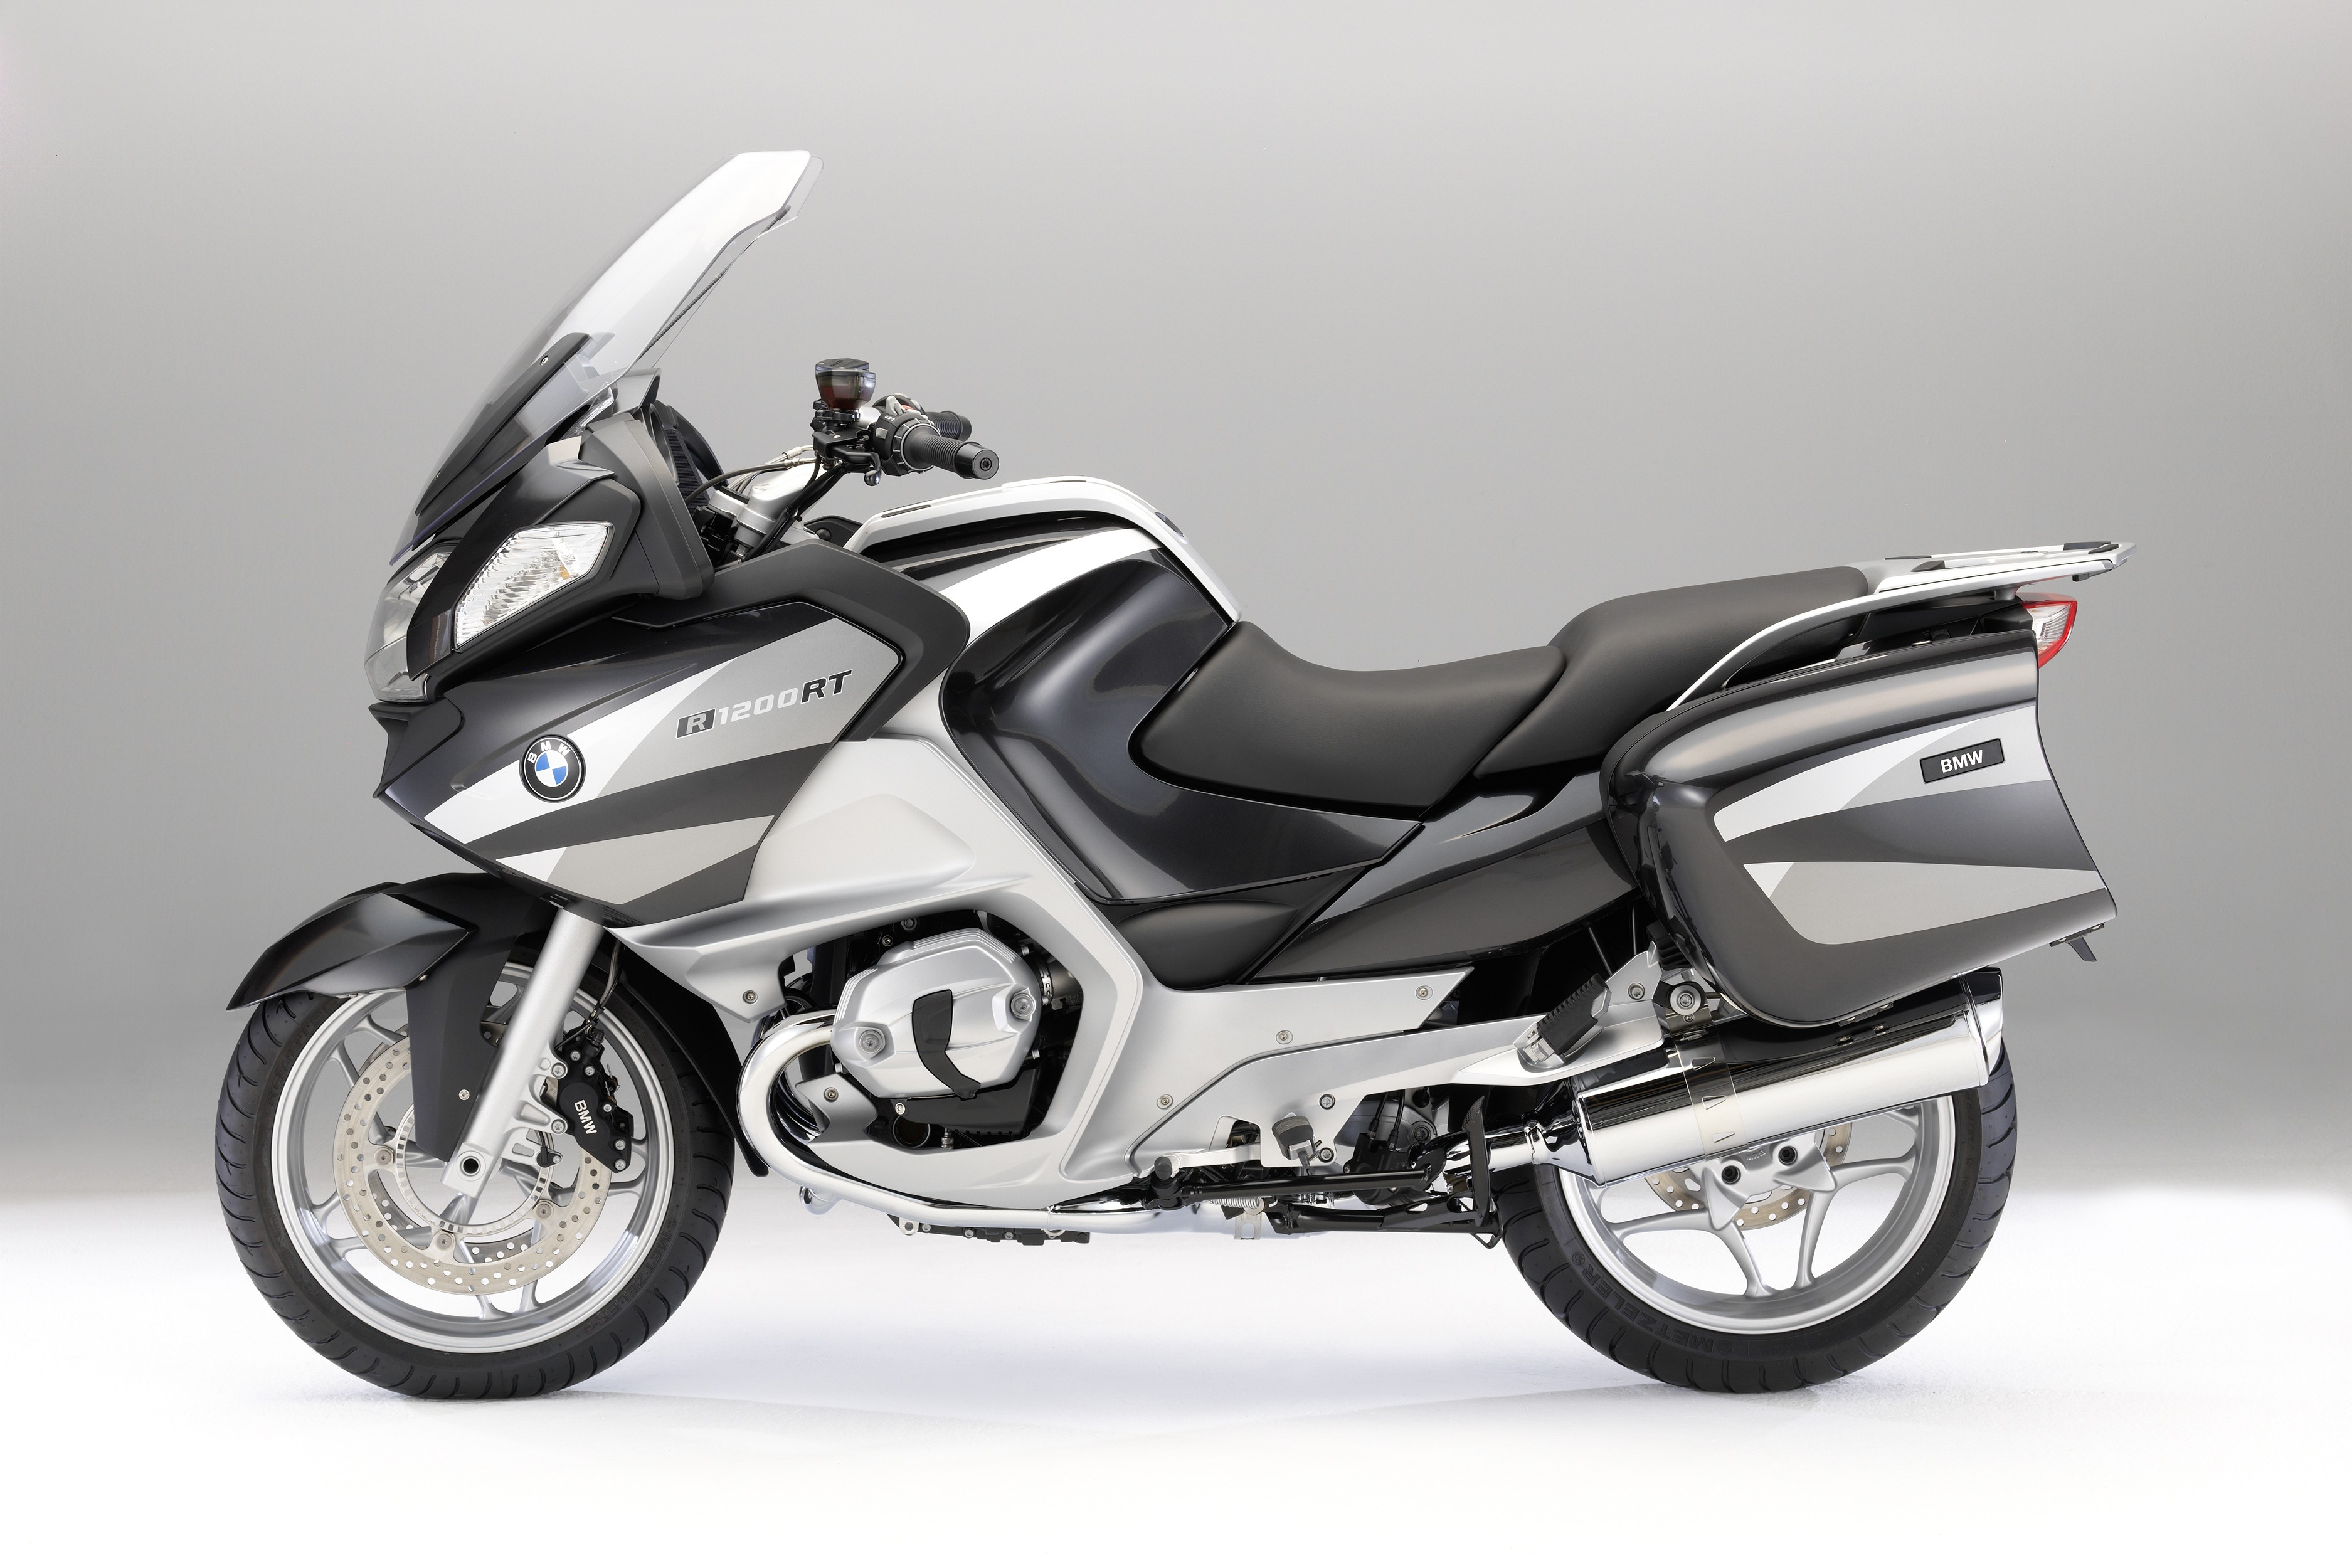 2010 bmw r 1200 rt gallery 331522 top speed. Black Bedroom Furniture Sets. Home Design Ideas